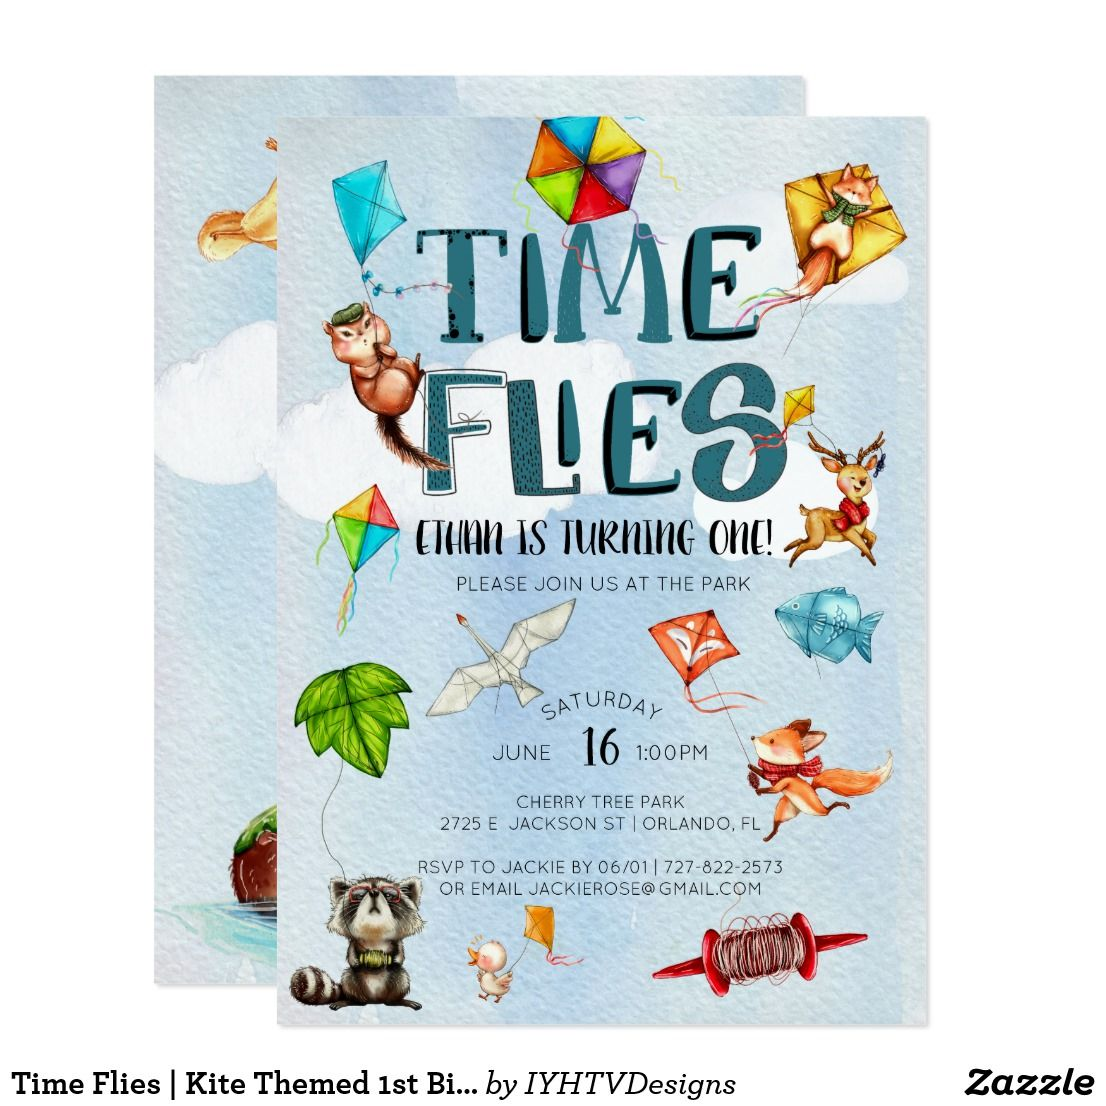 Time Flies Kite Themed 1st Birthday Party Invitation Zazzle Com Kite Birthday Party Kite Party 1st Birthday Parties